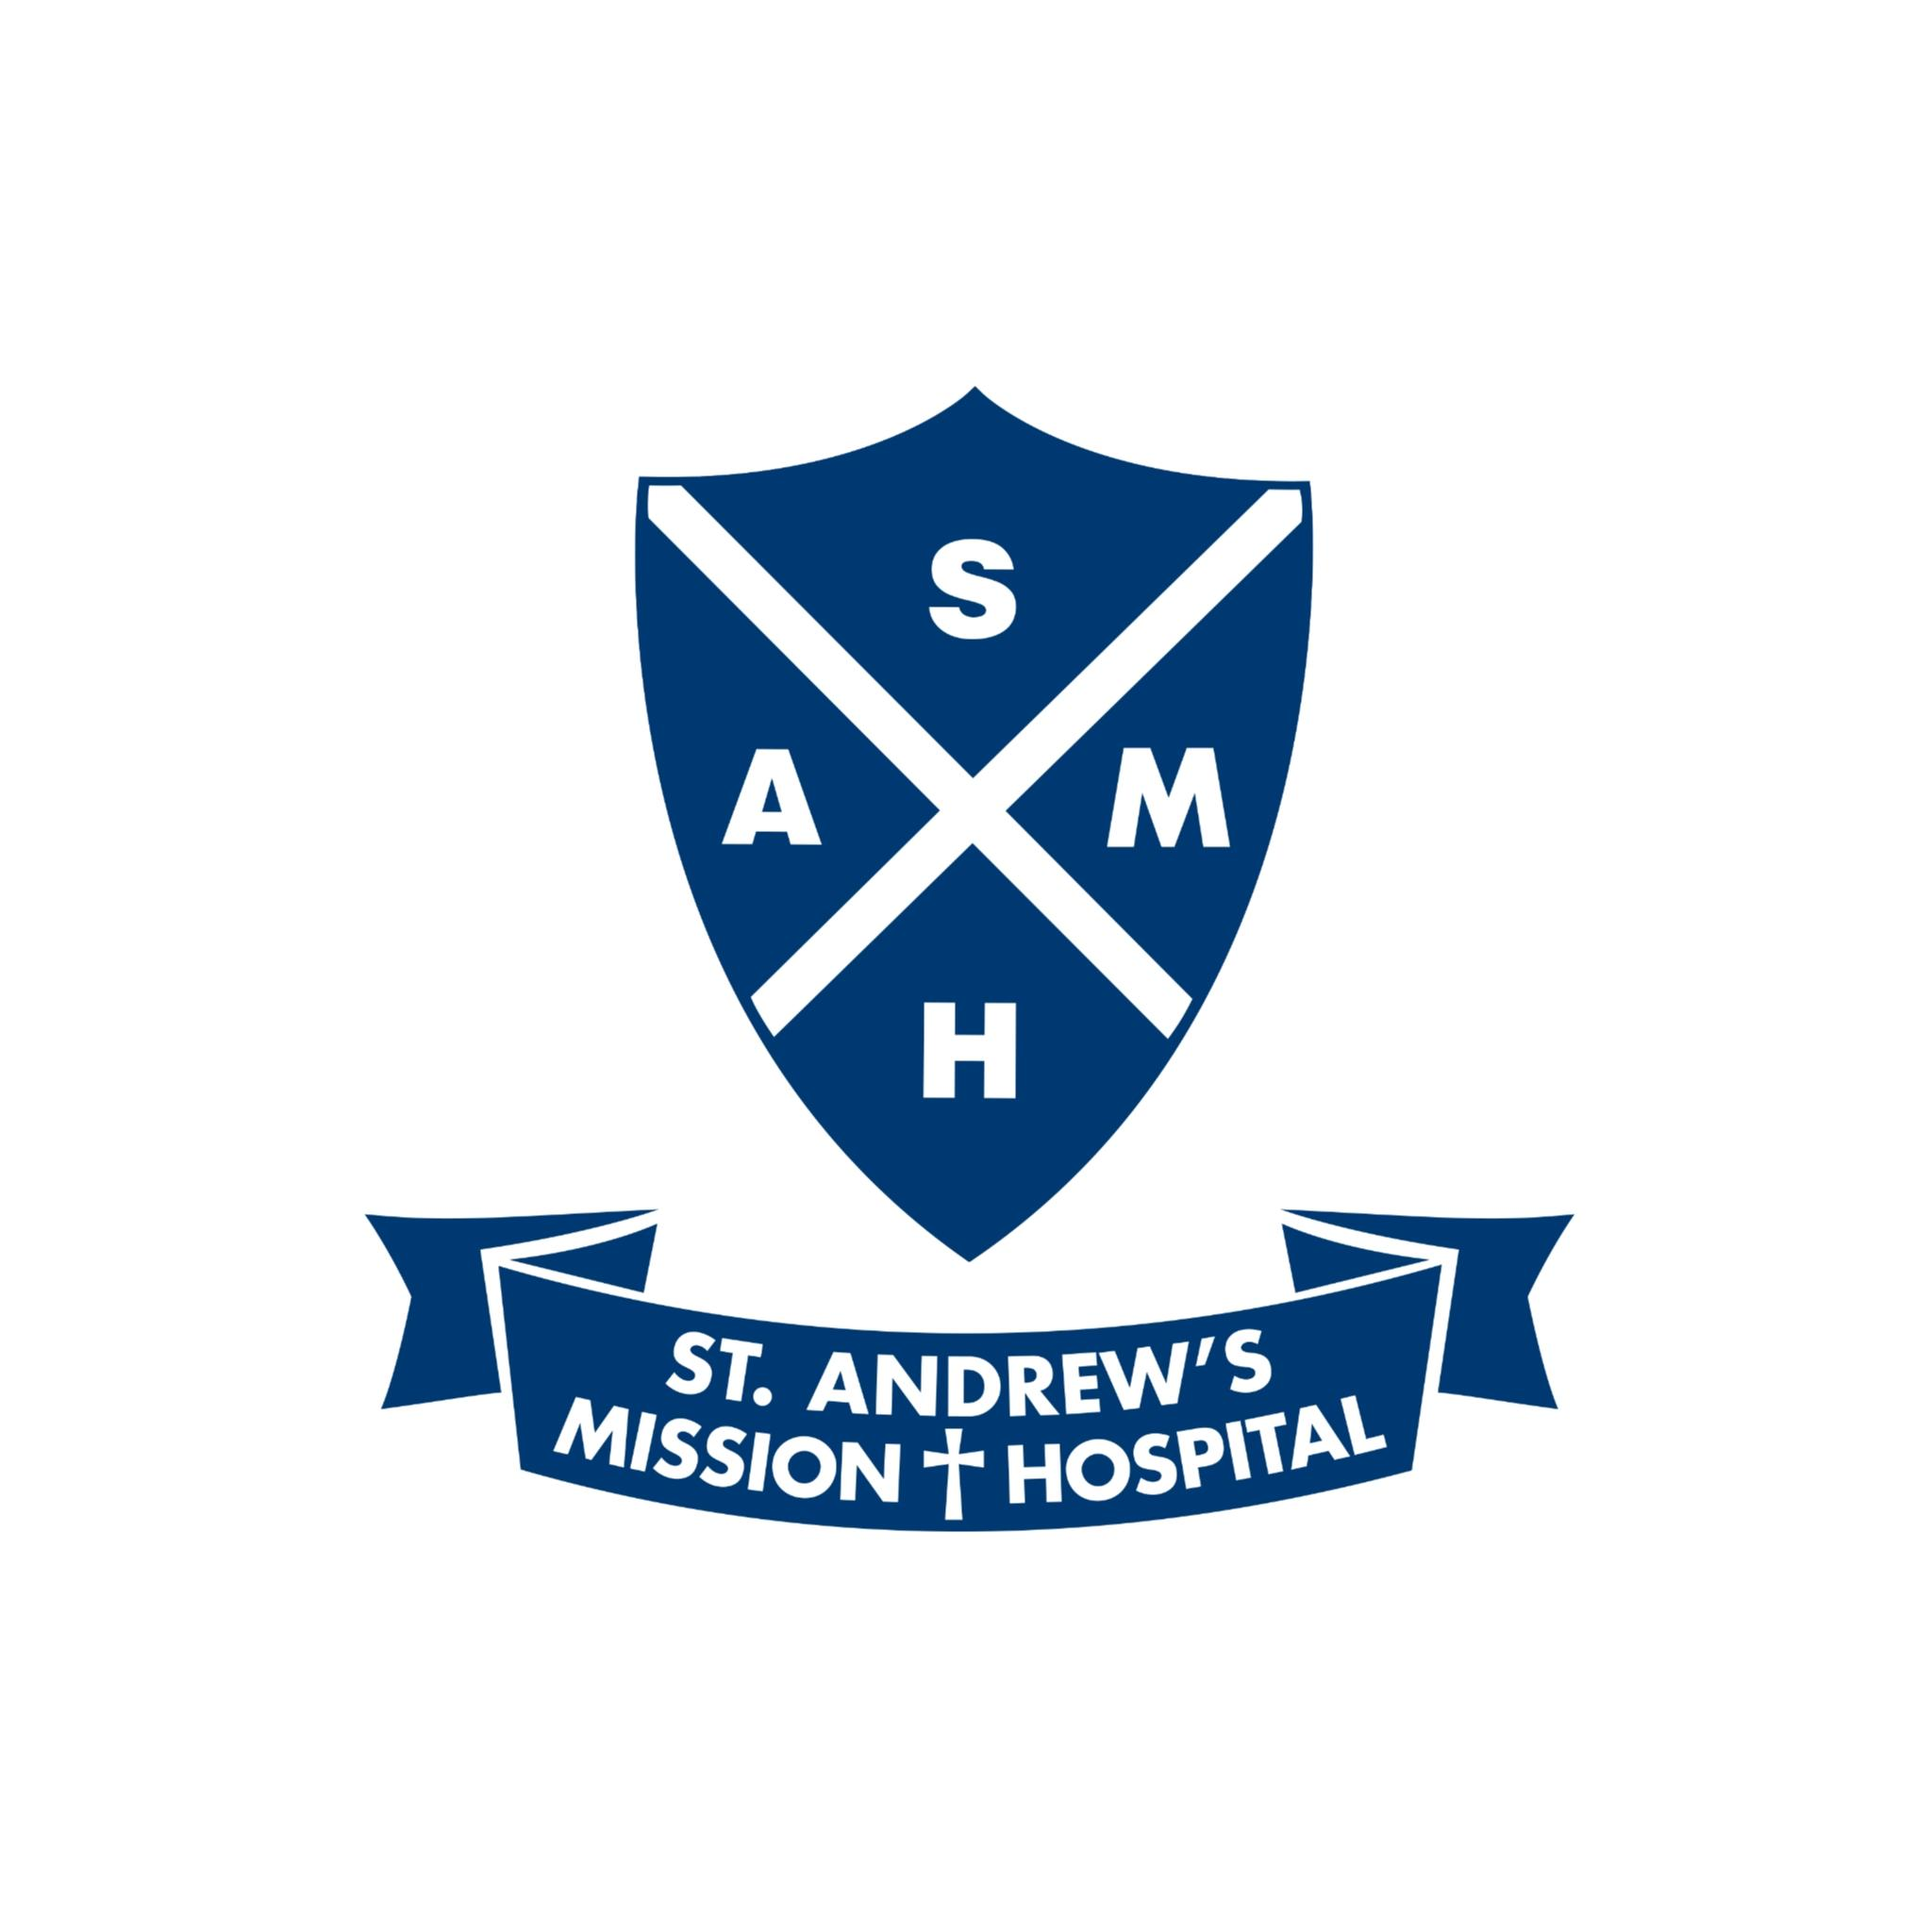 St. Andrew's Mission Hospital